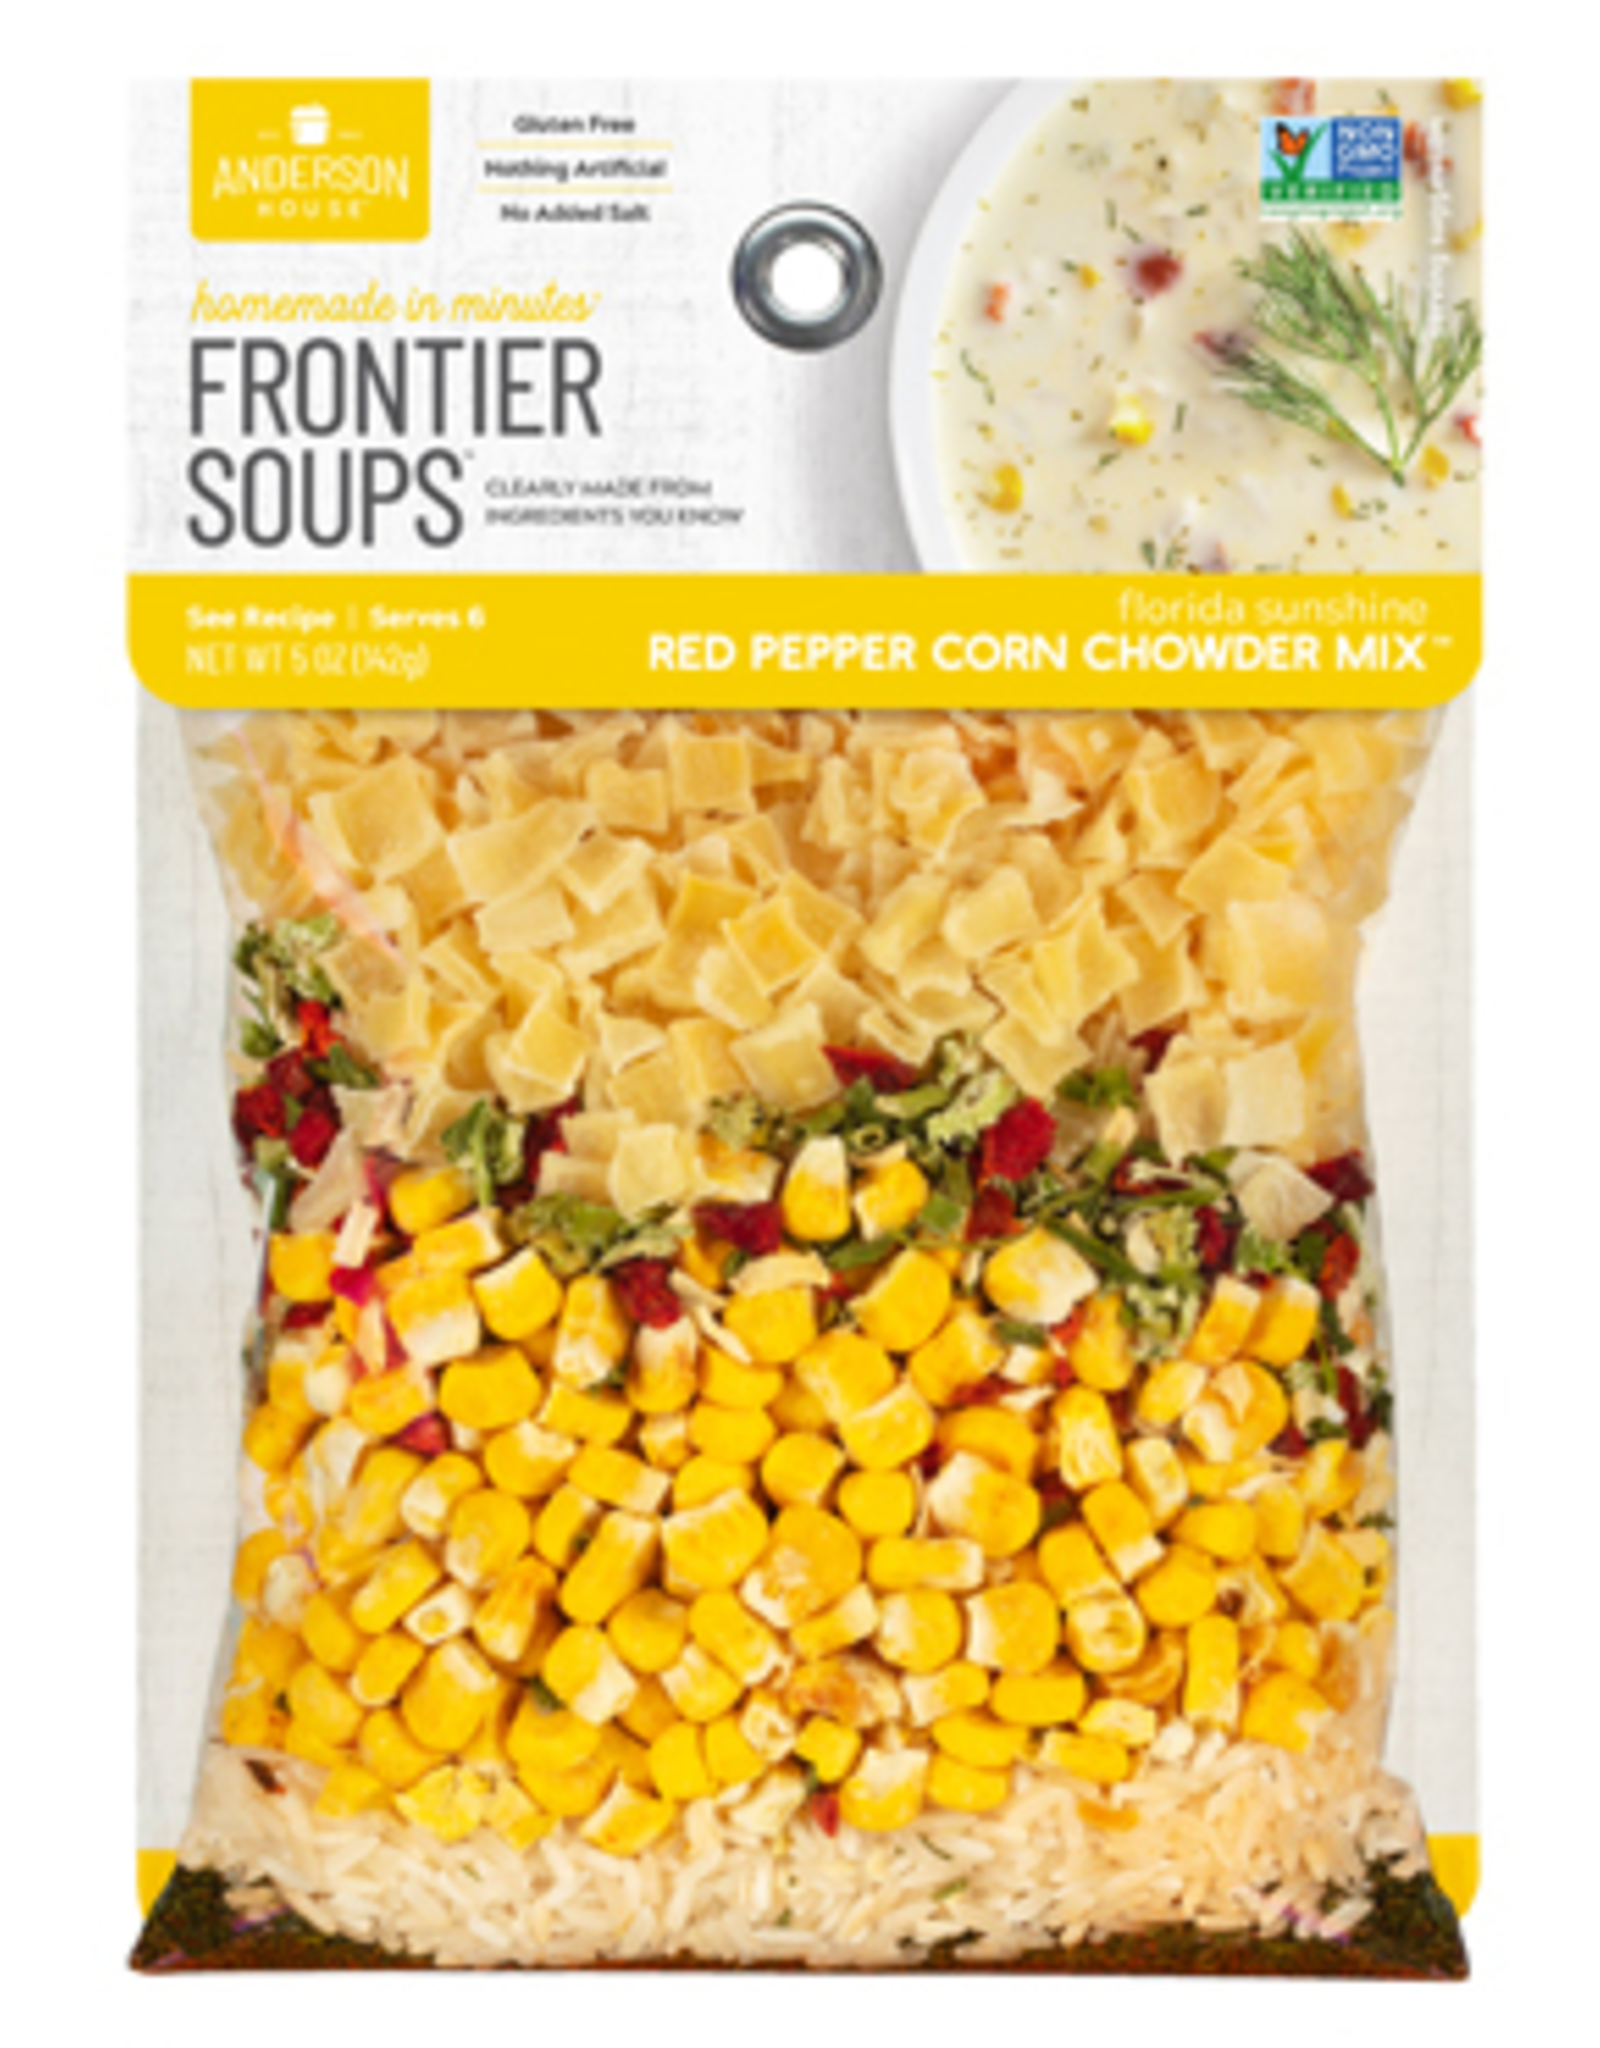 Frontier Soups Florida Sunshine Red Pepper Corn Chowder Mix